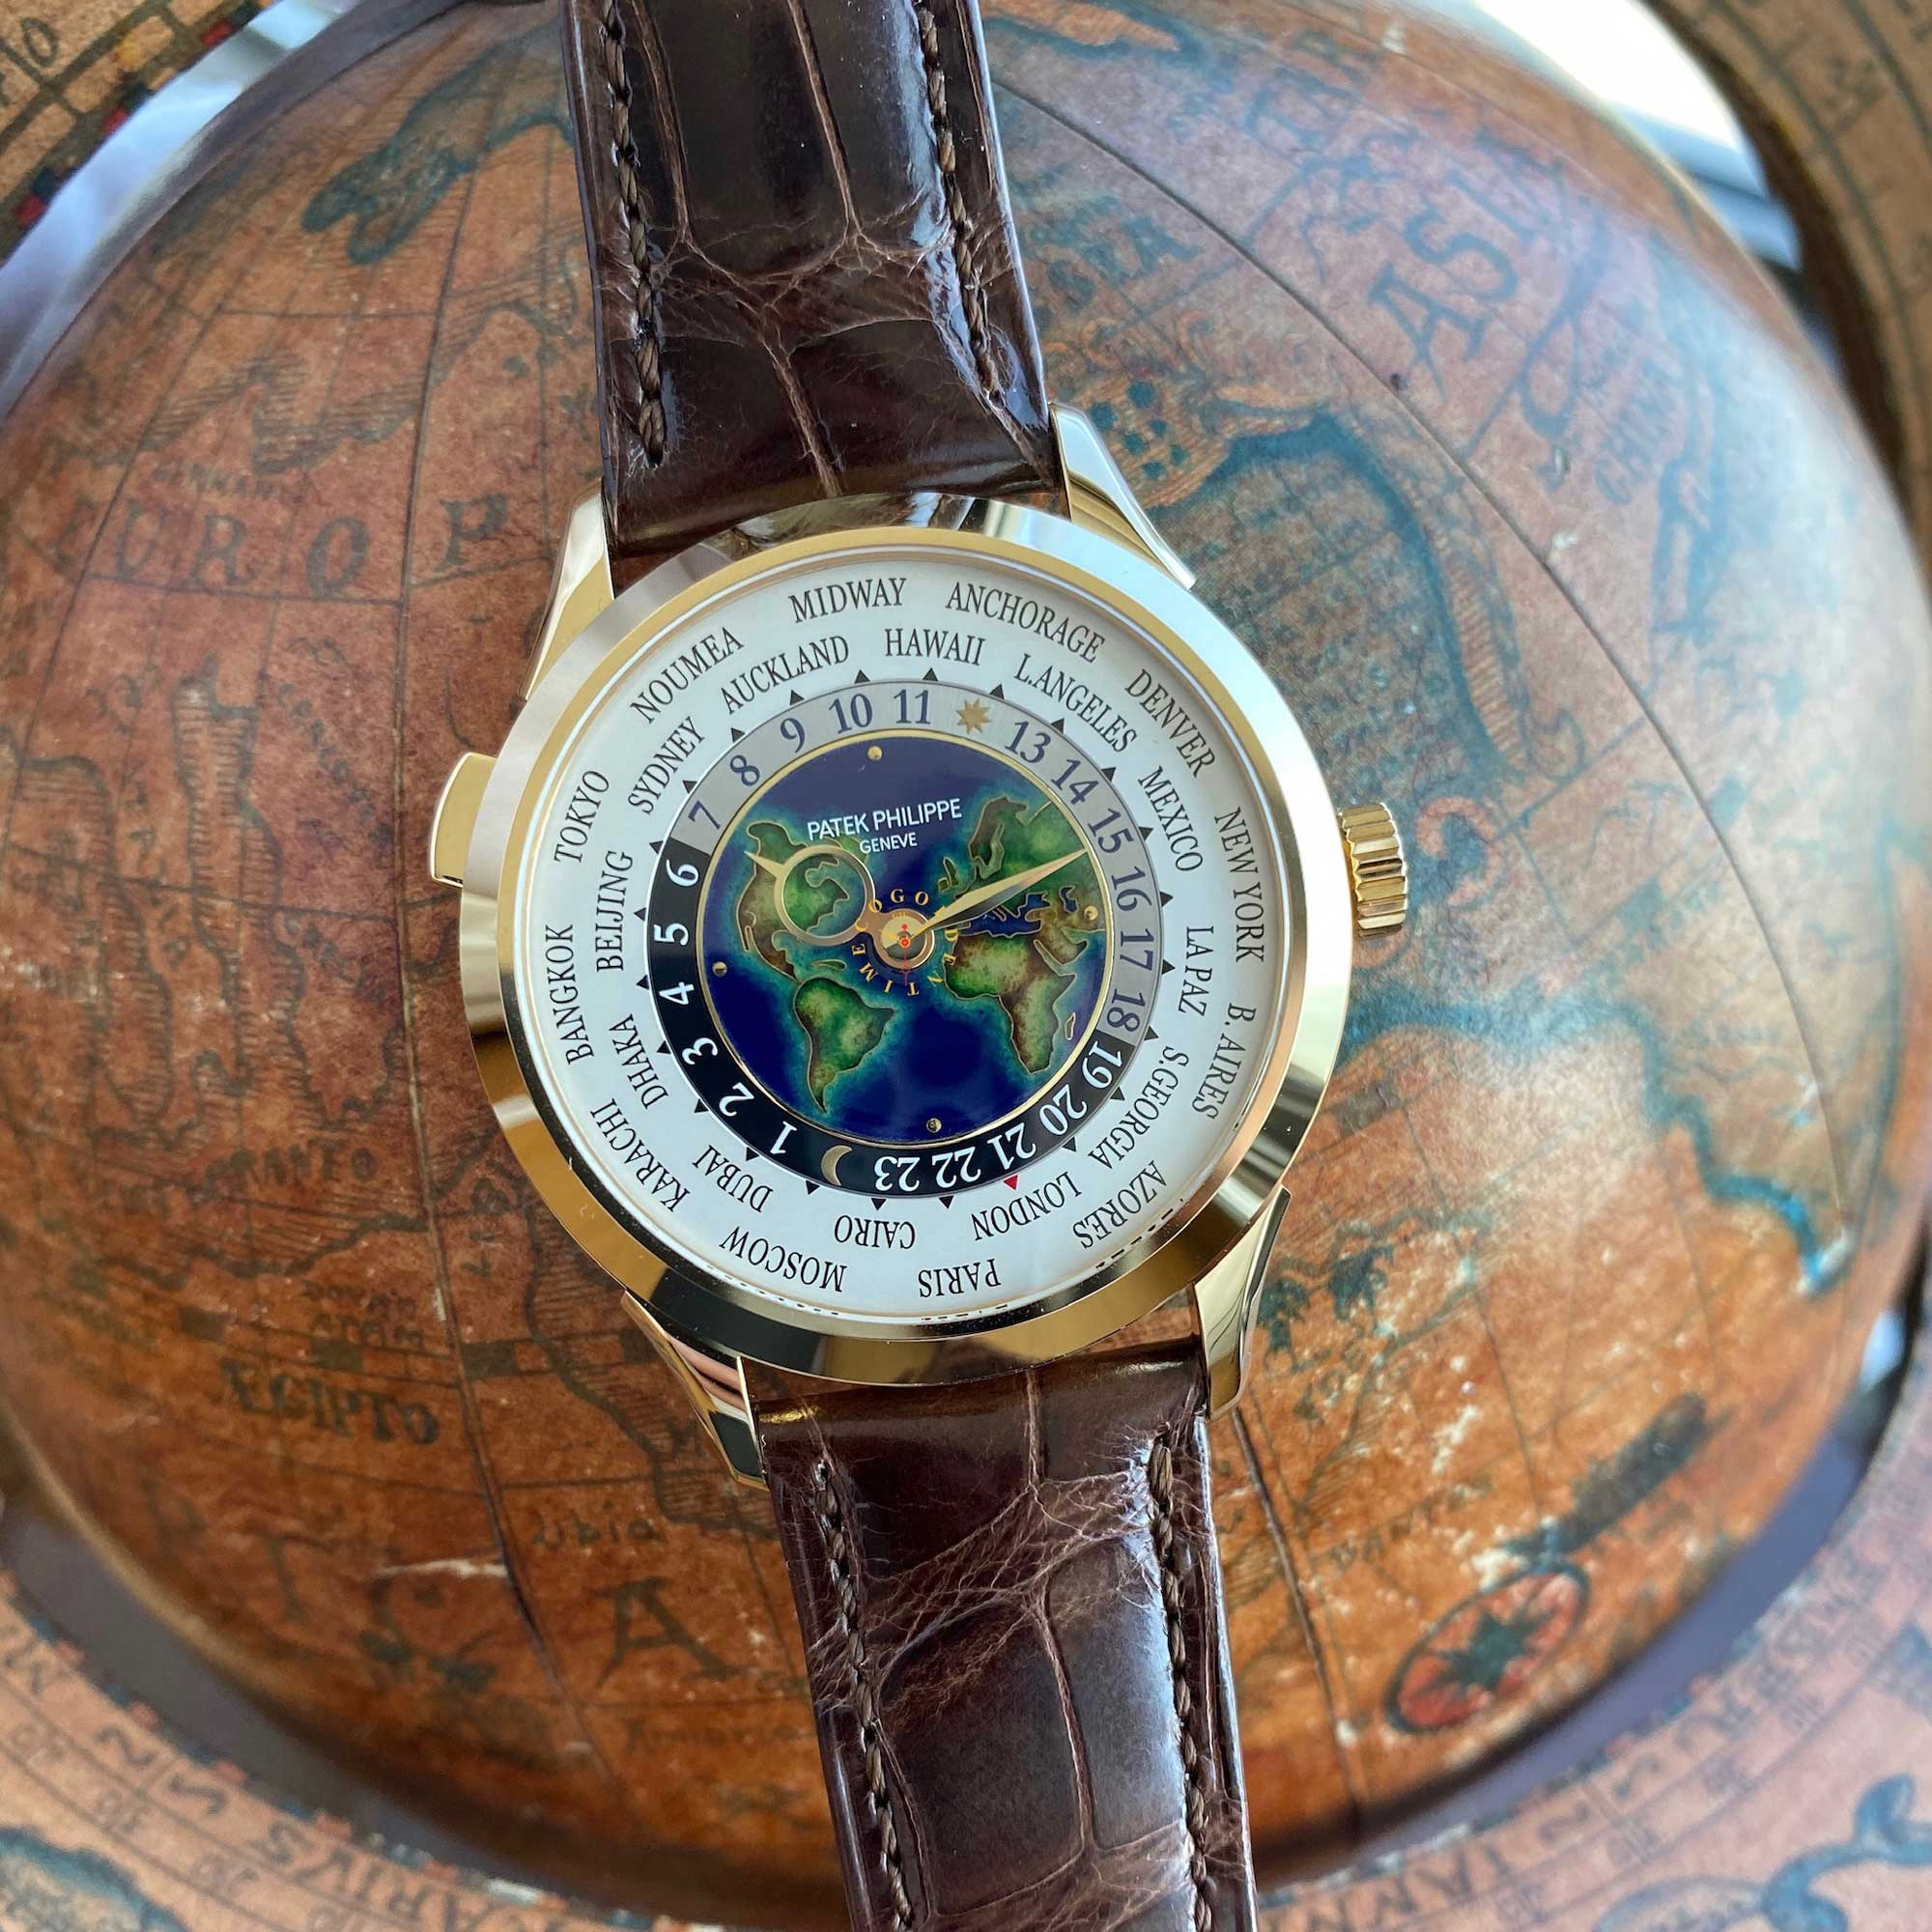 Patek Philippe World Time ref 5231J Yellow Gold Cloisonné Enamel Dial